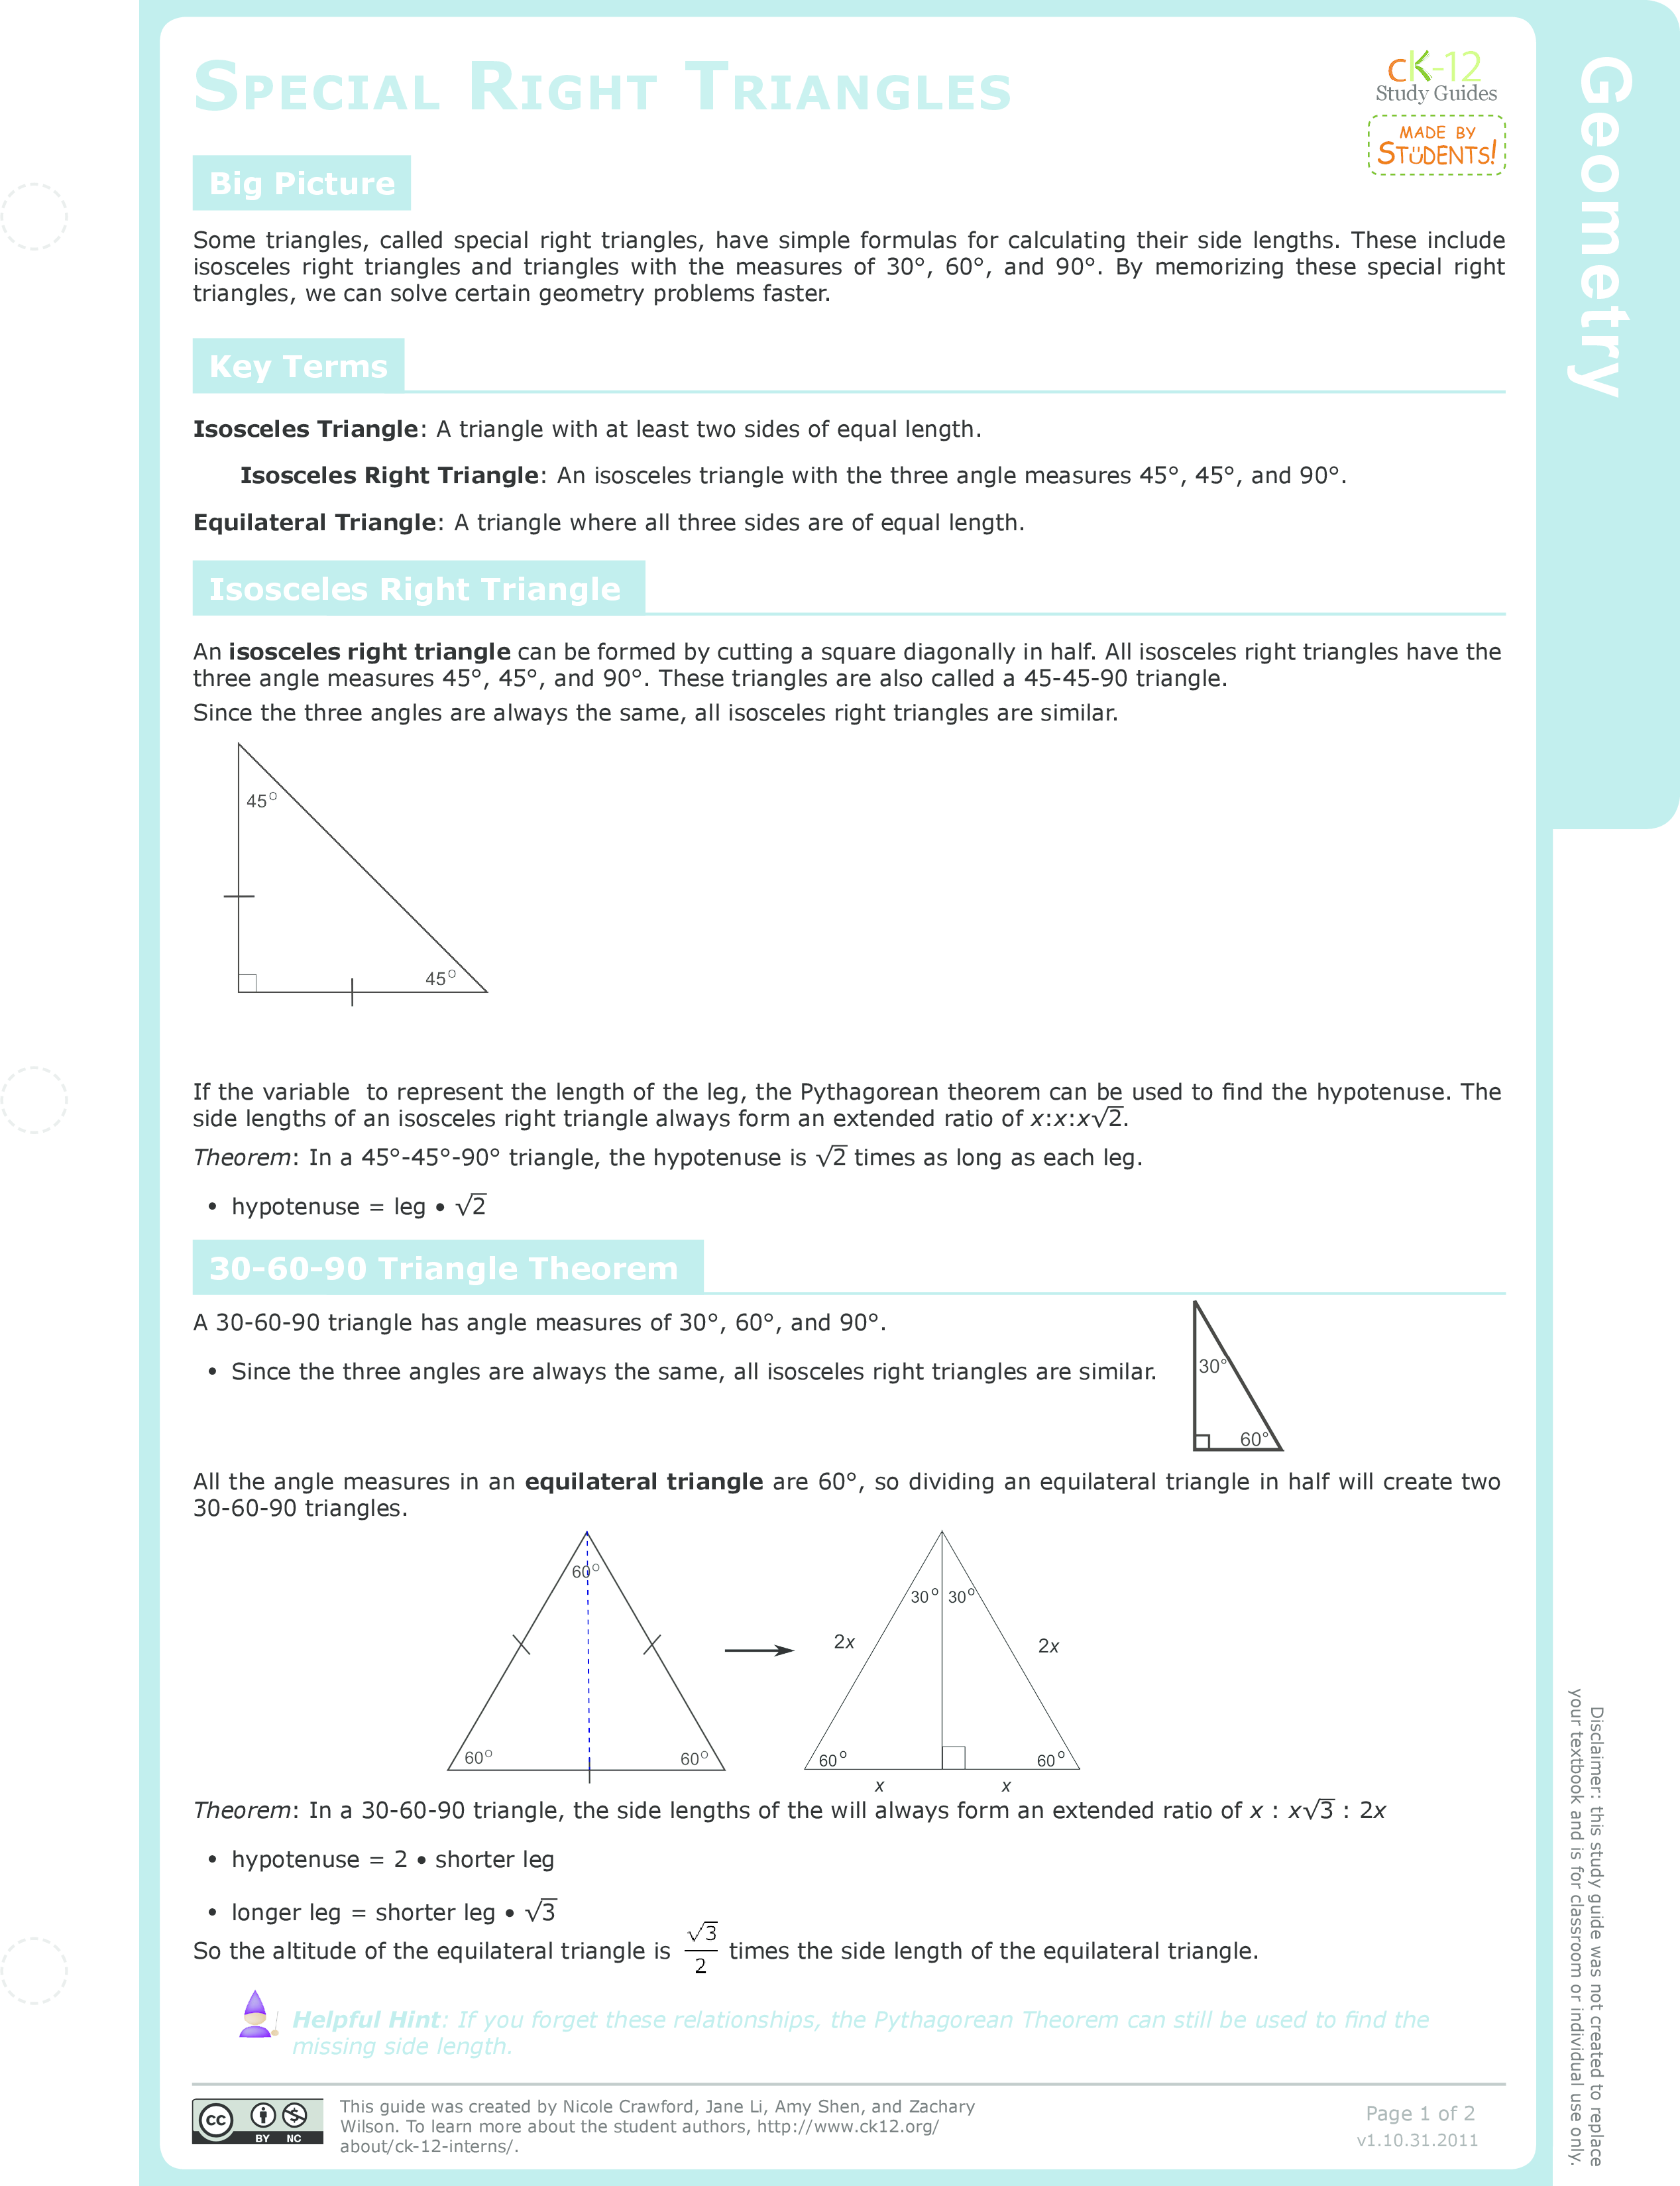 Worksheet 30 60 90 Triangle Worksheet With Answers Carlos Lomas